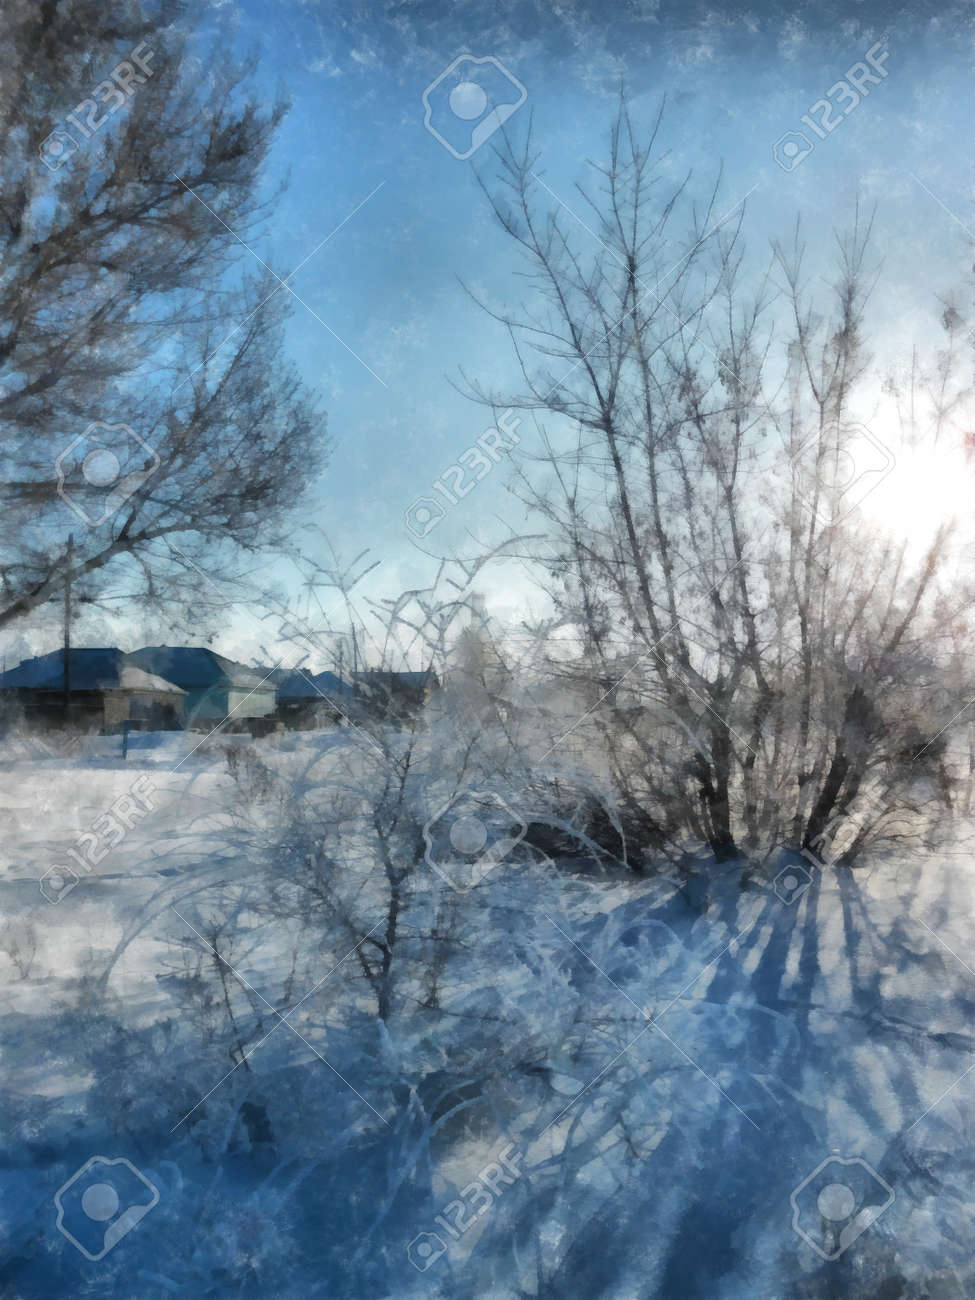 A Winter Clear Day Rural Landscape With Rustic Garden Covered Snow